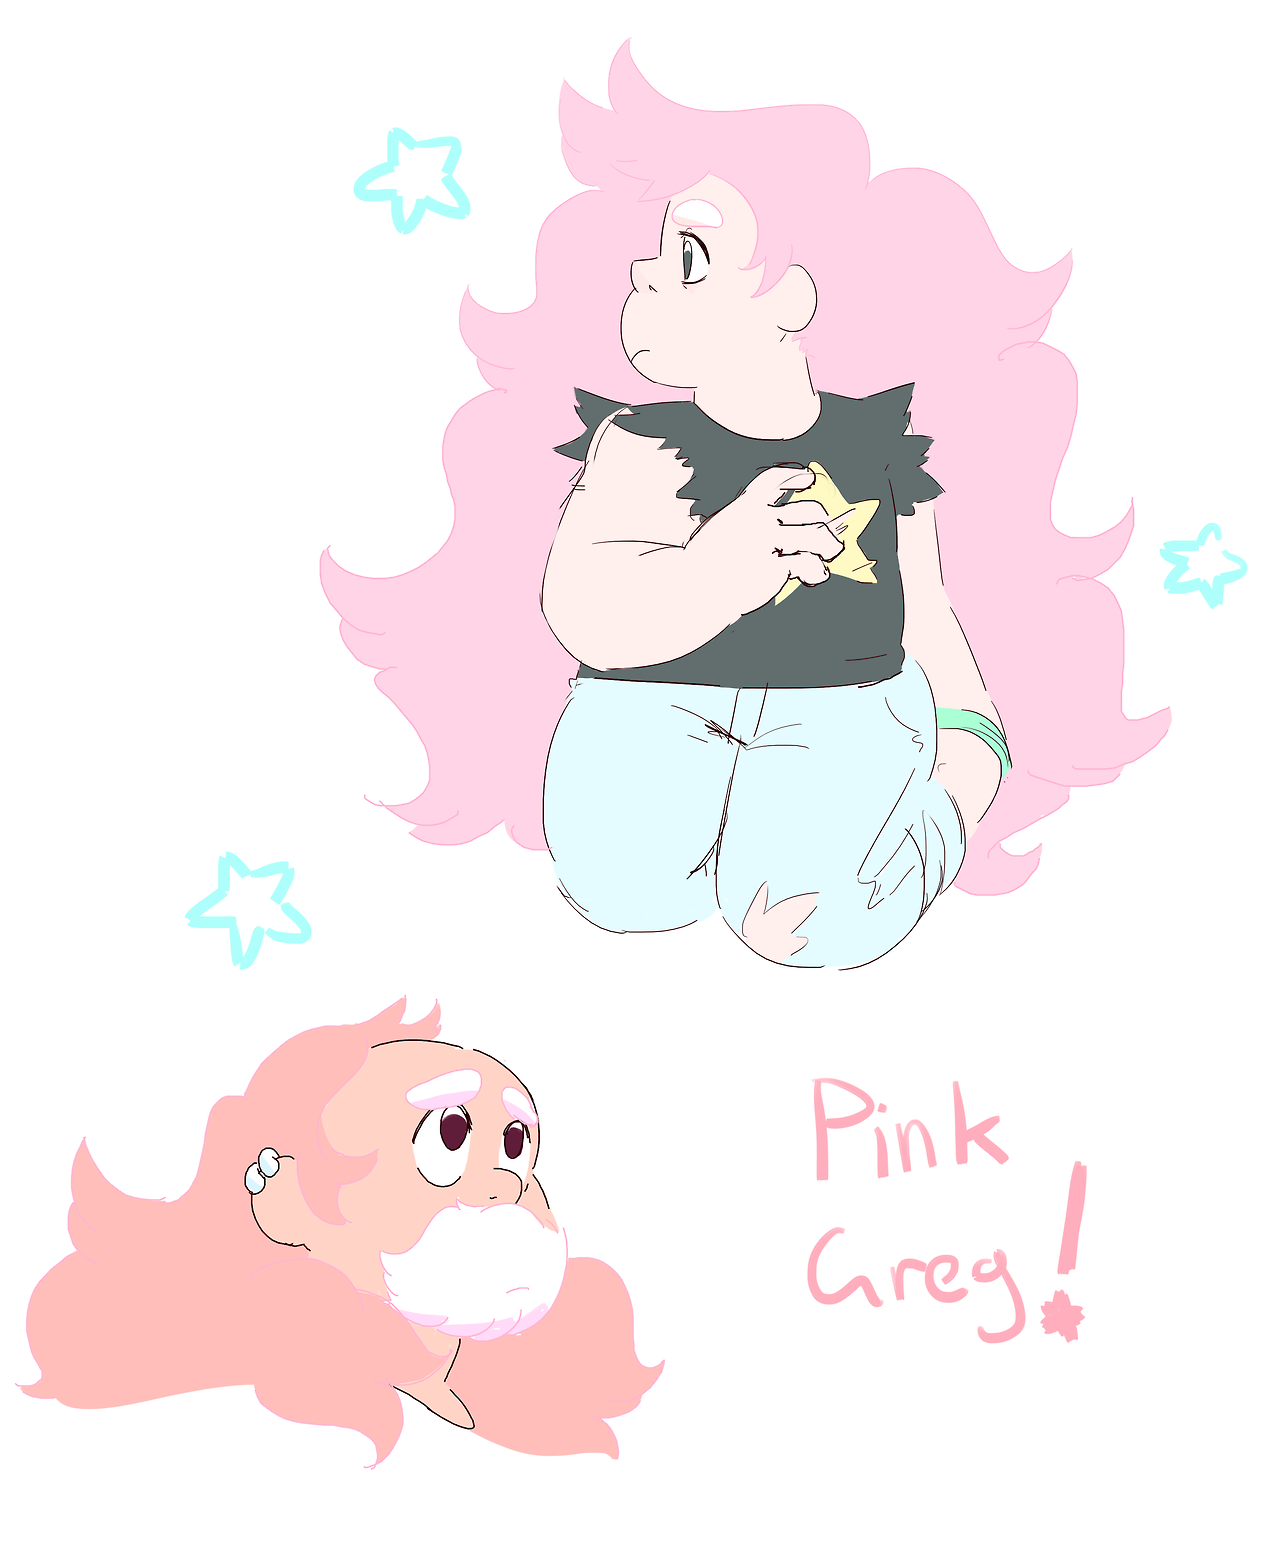 an au me n my bf have been talking abt. making pink color palettes is really hard